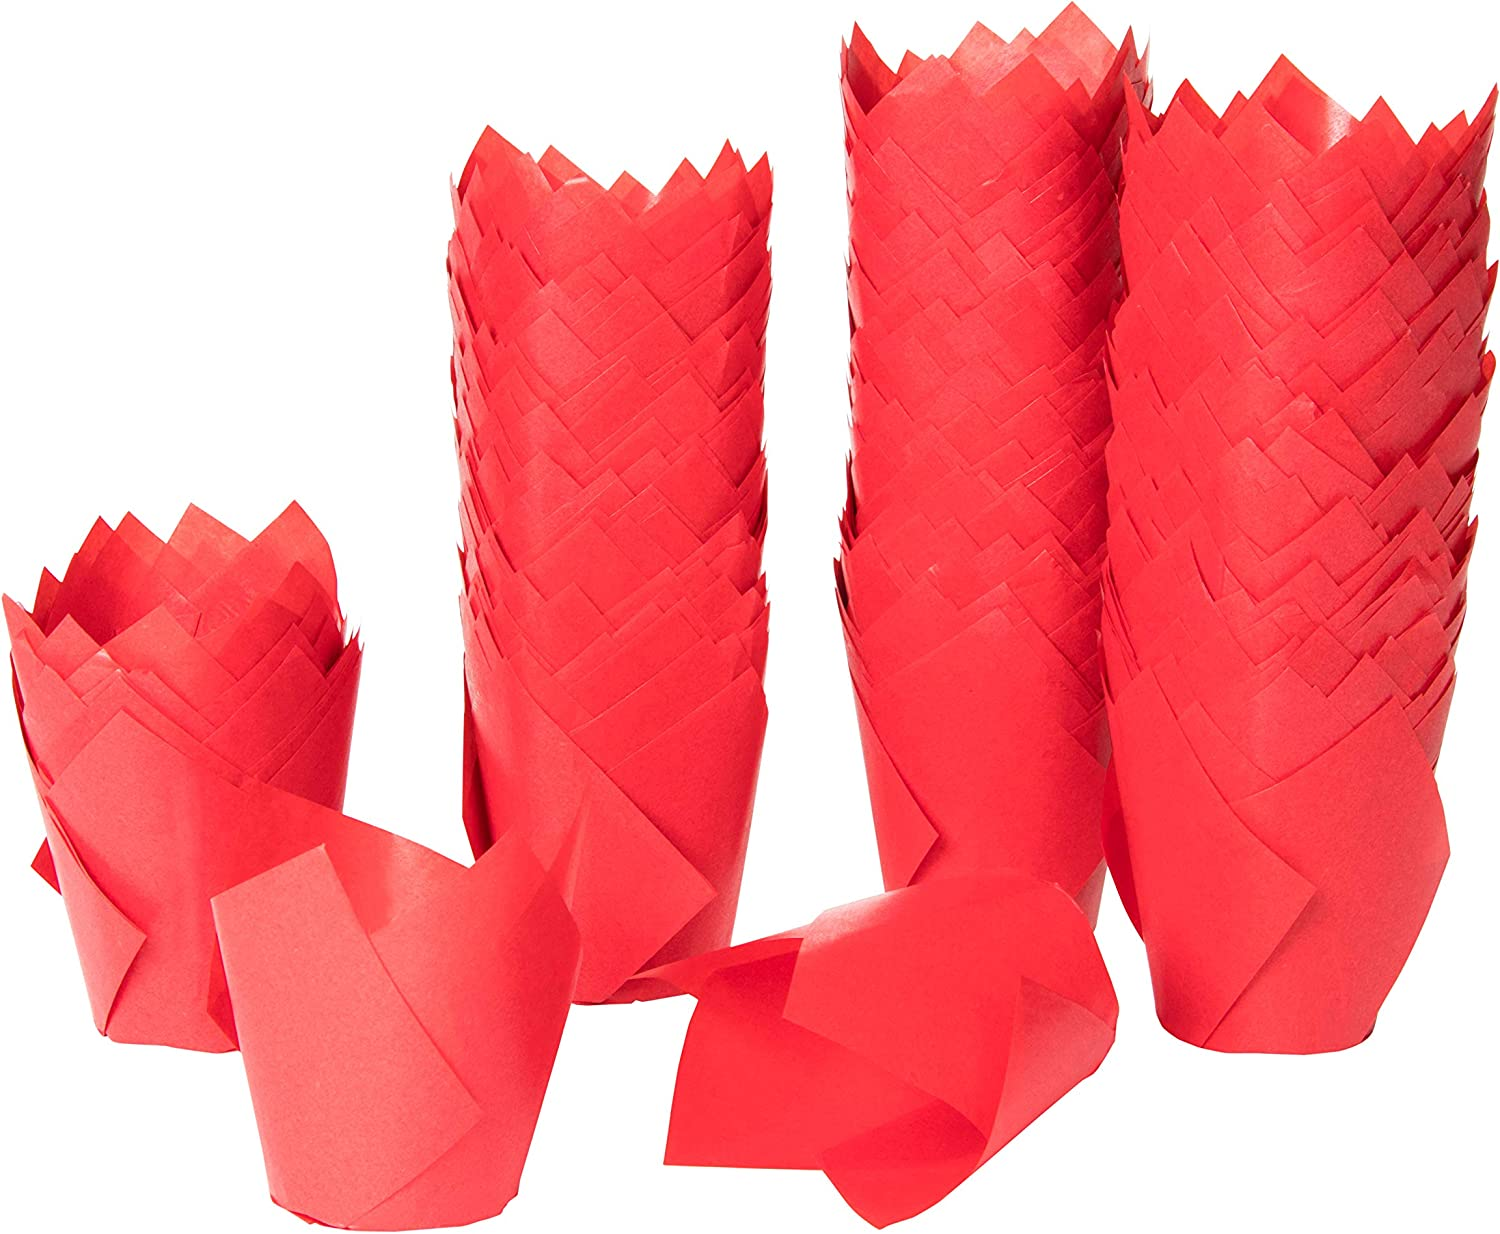 300 Pack Tulip Cupcake Liners Baking Cups Muffin Wrappers for Party Birthdays